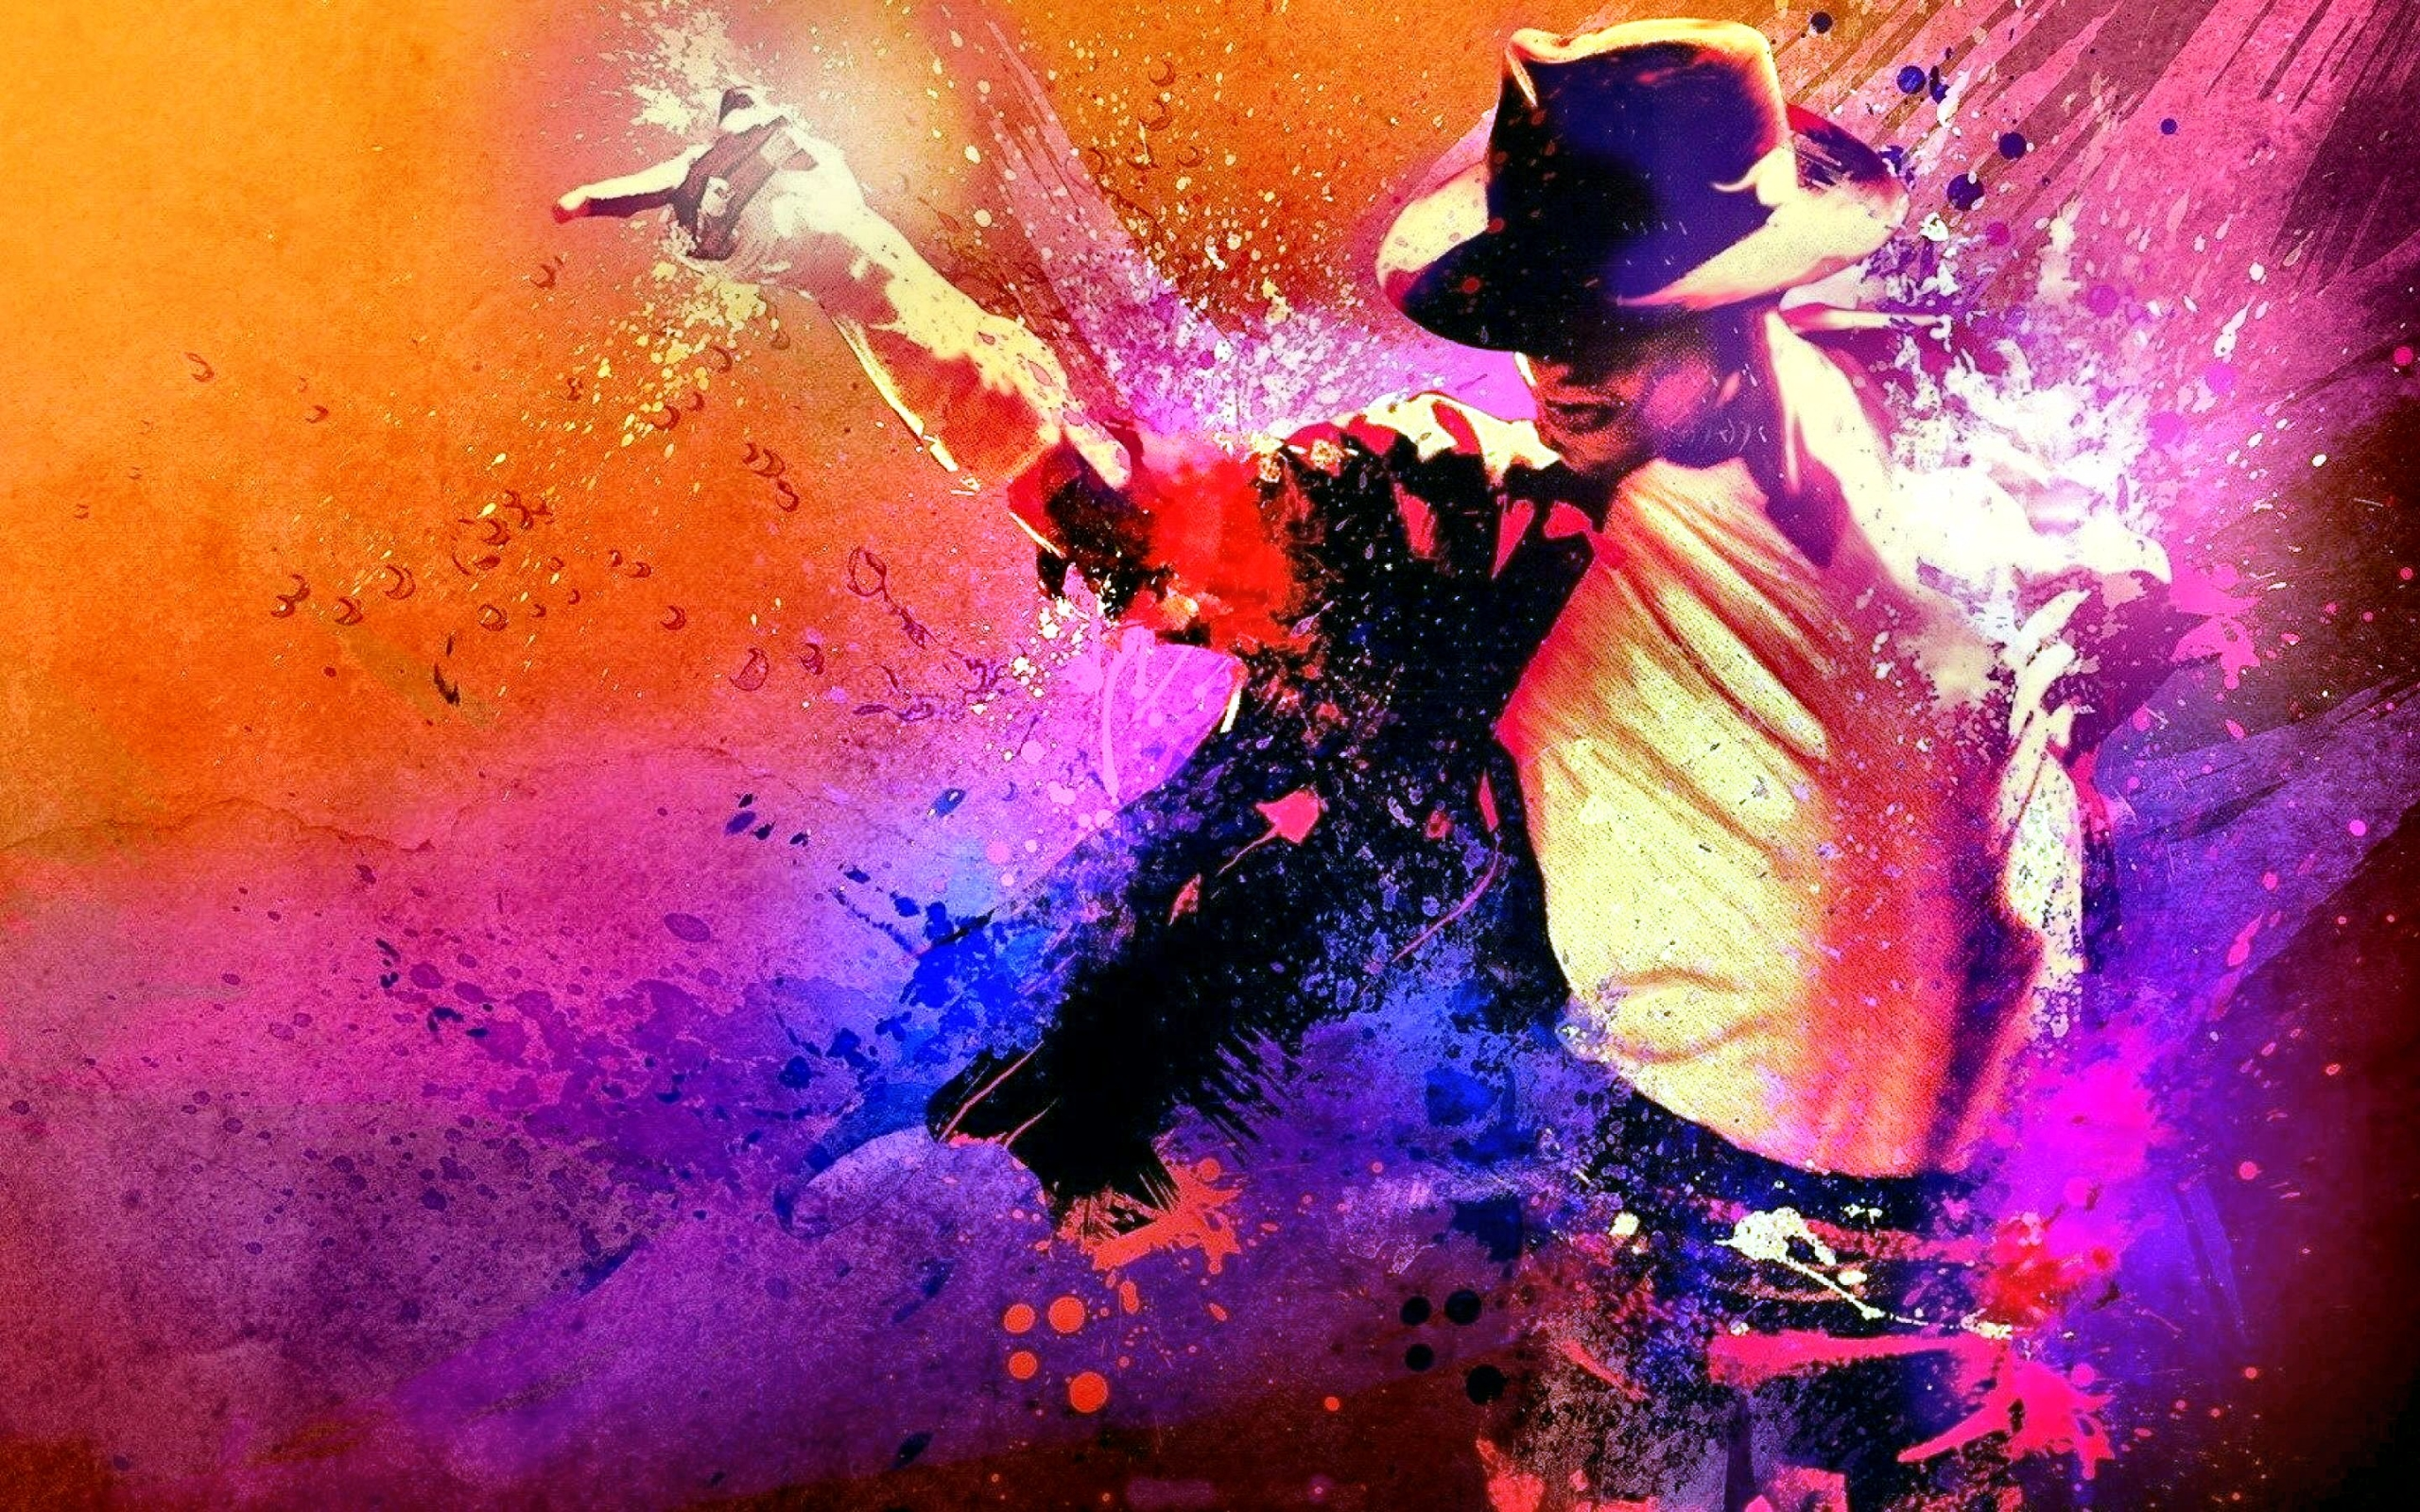 HD Wallpaper Artistic Celebrity King Of Pop Michael Jackson